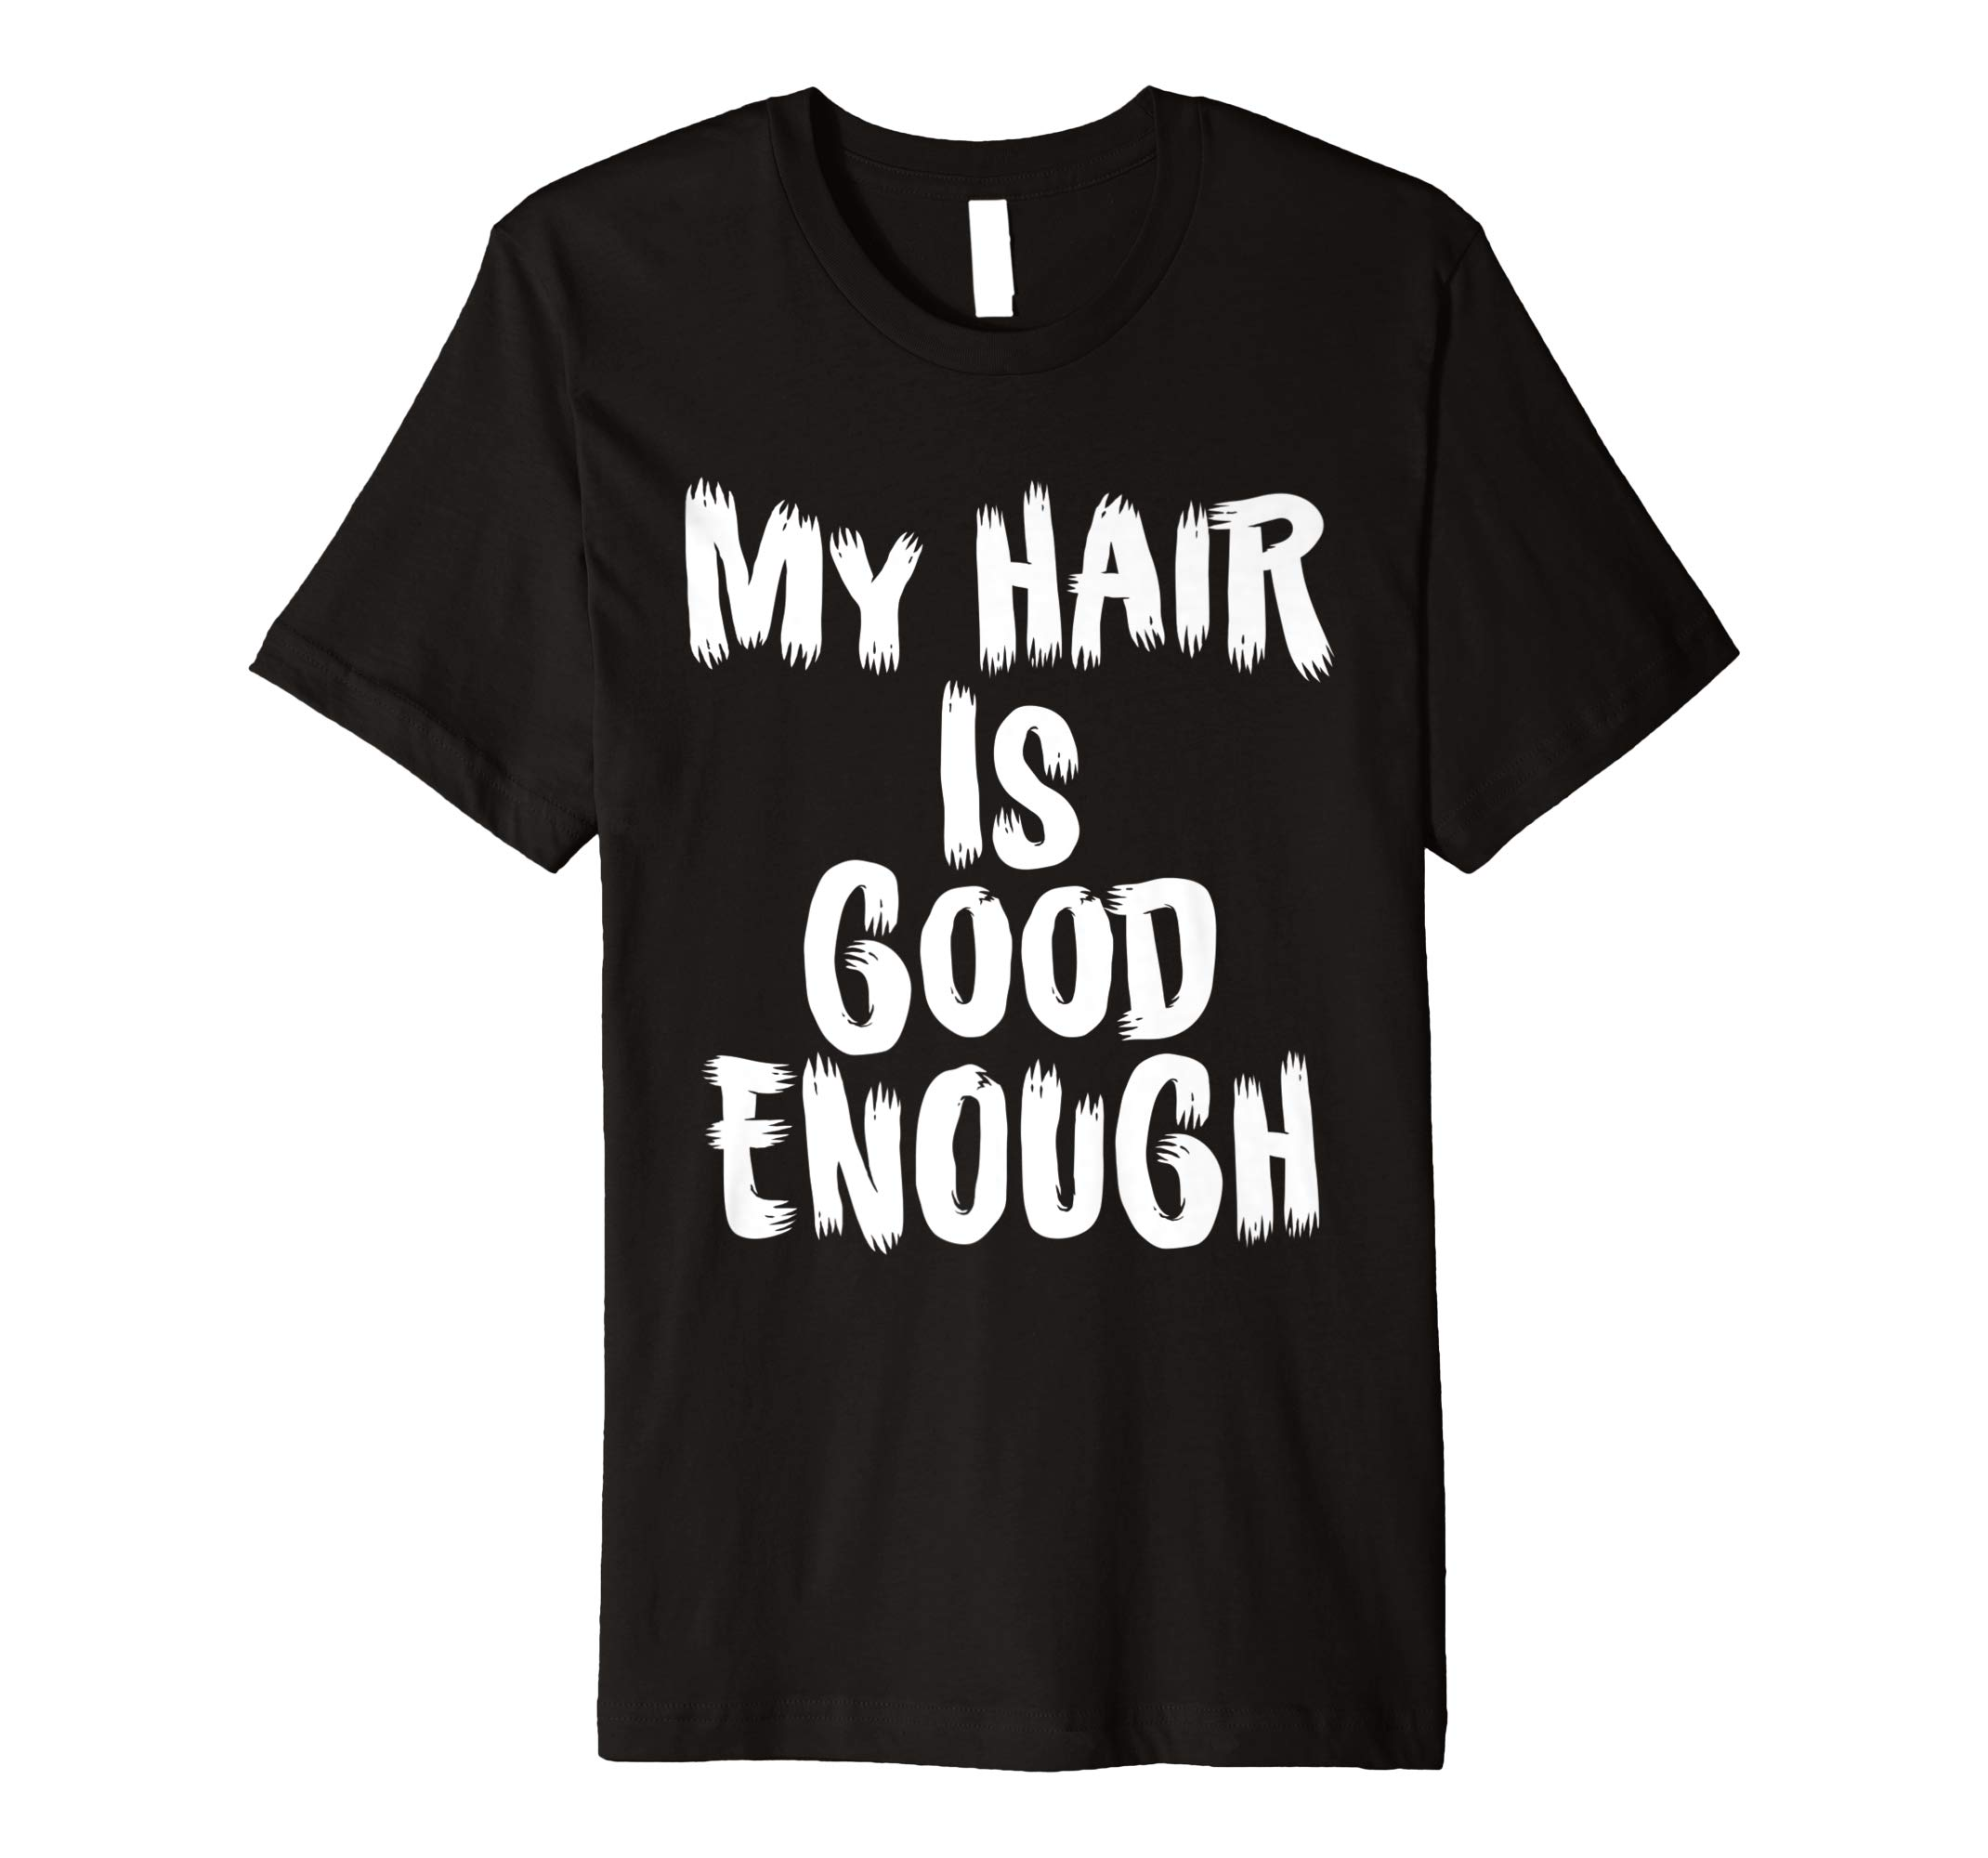 Click Here To Buy This T-Shirt